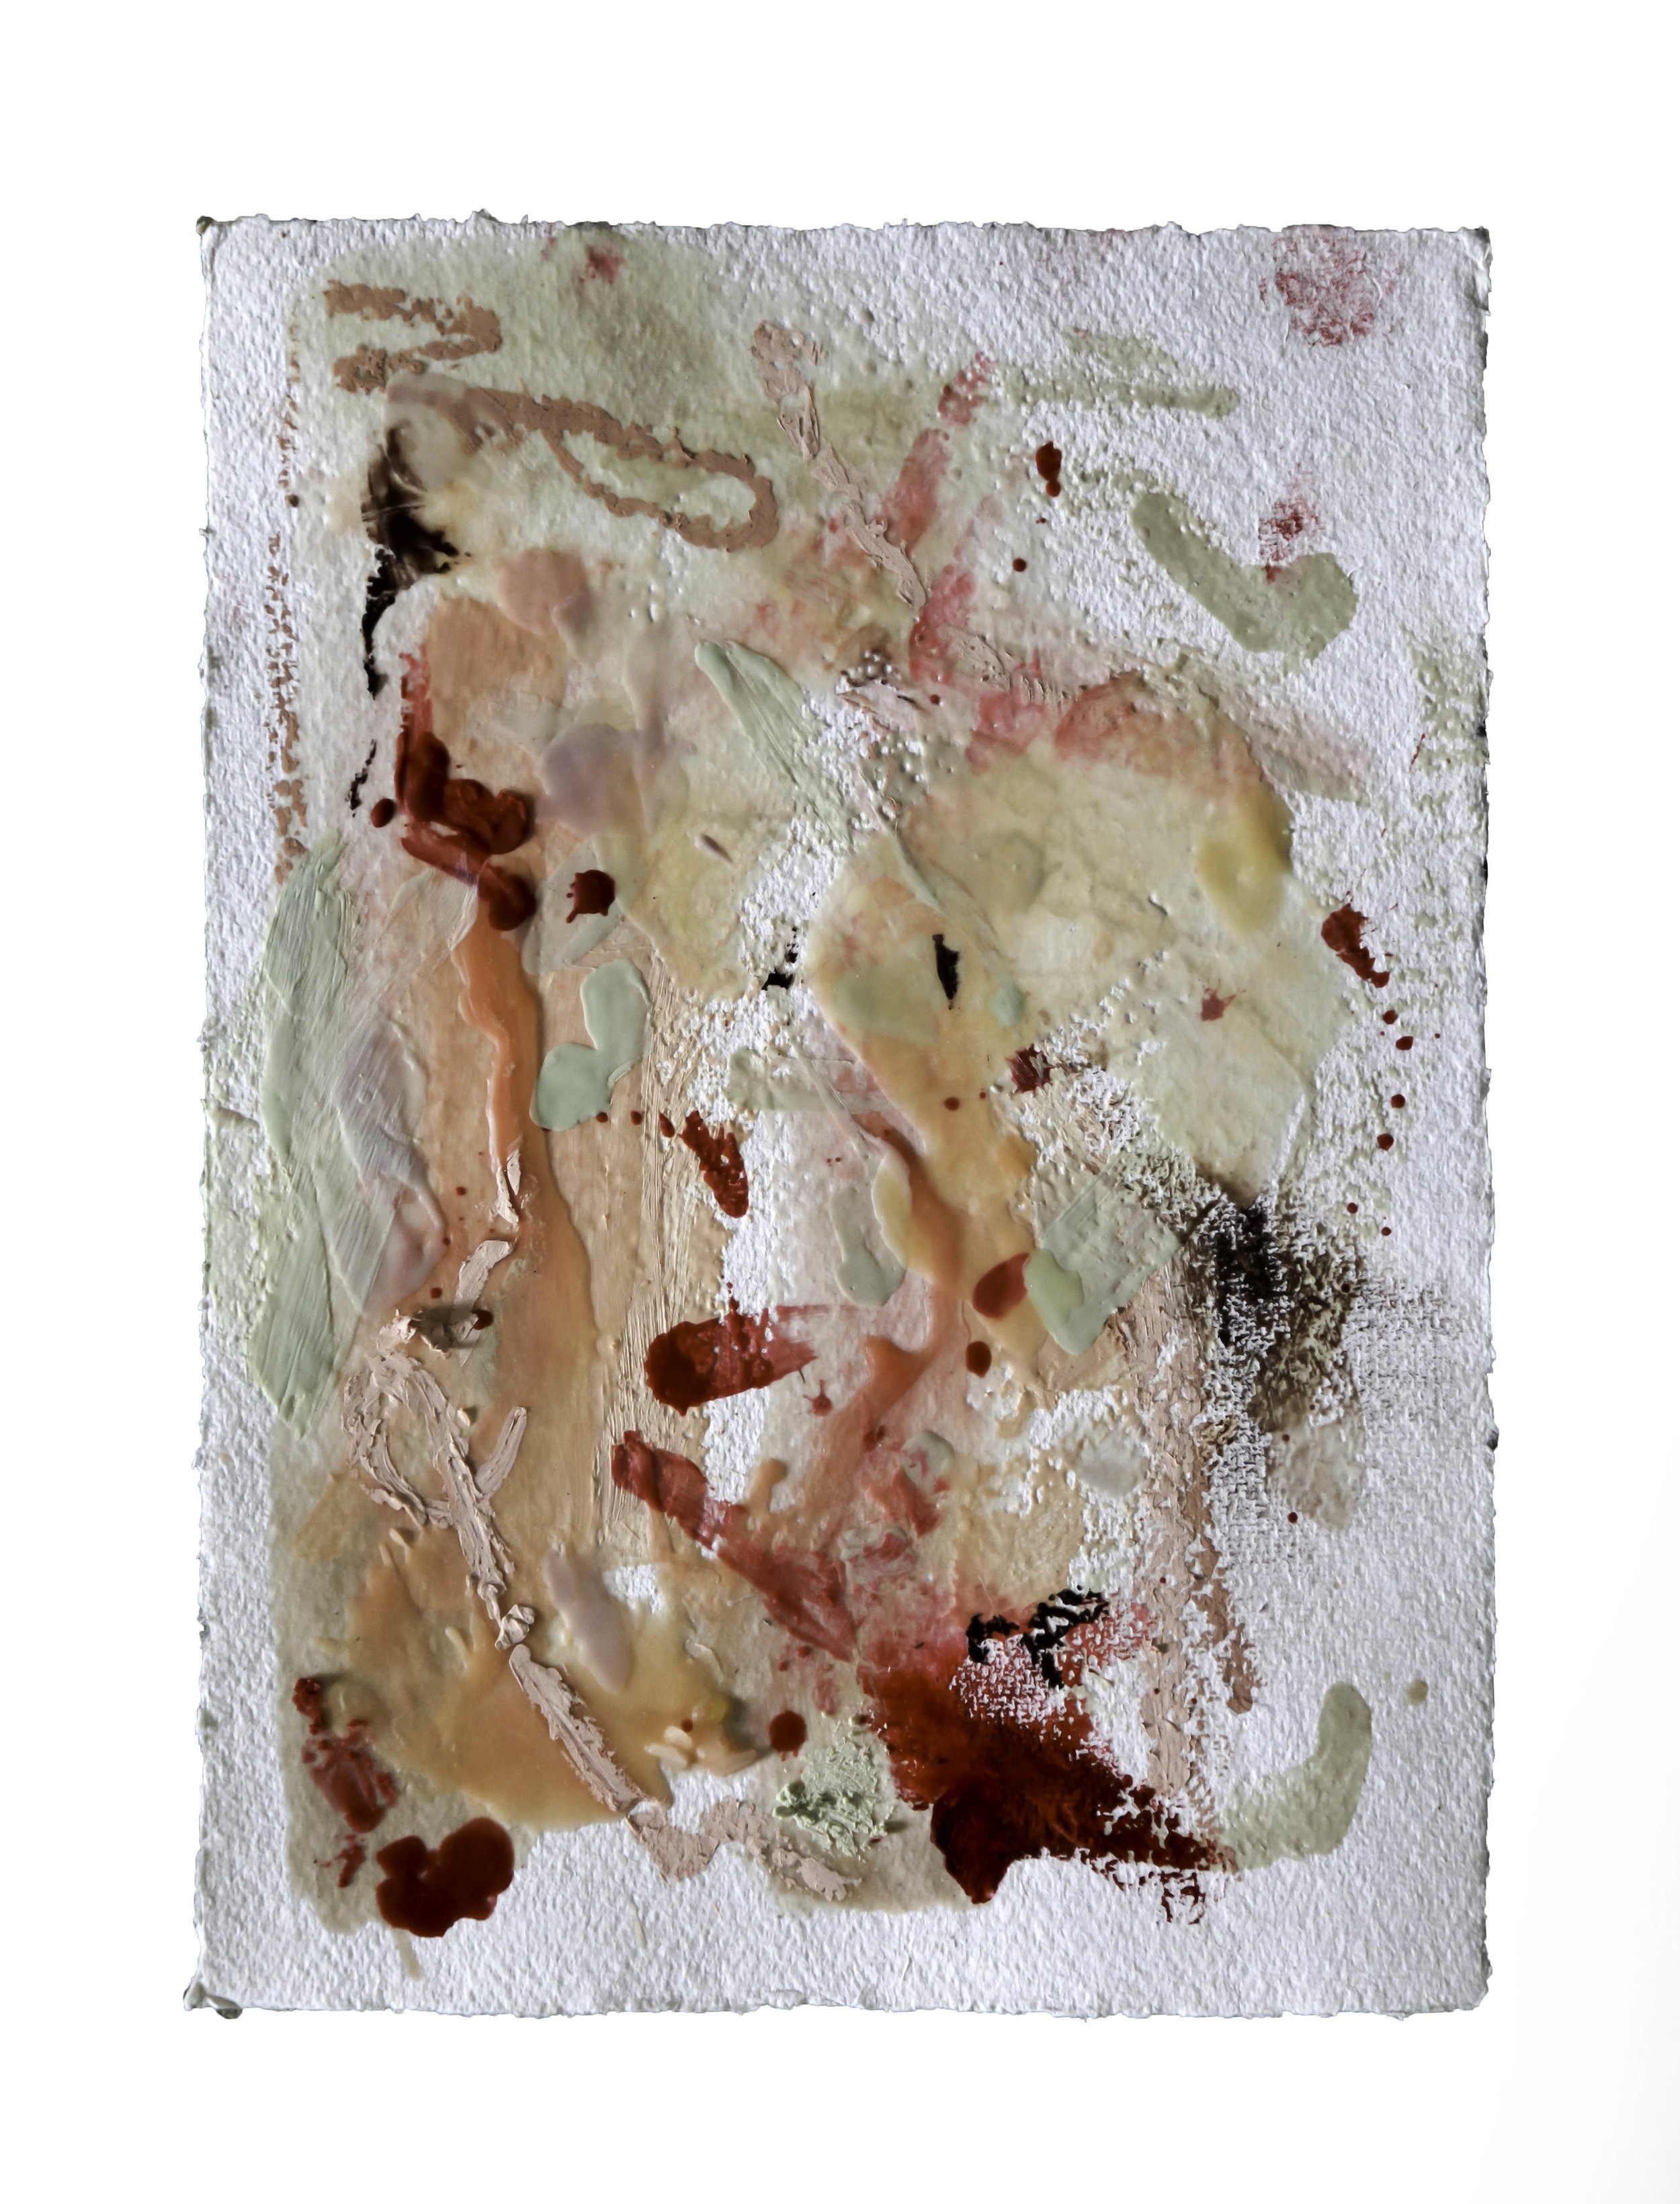 Paleta de Pele #2,  2016. Wax an oil on paper, 32 x 24 inches (81 x 61 cm).